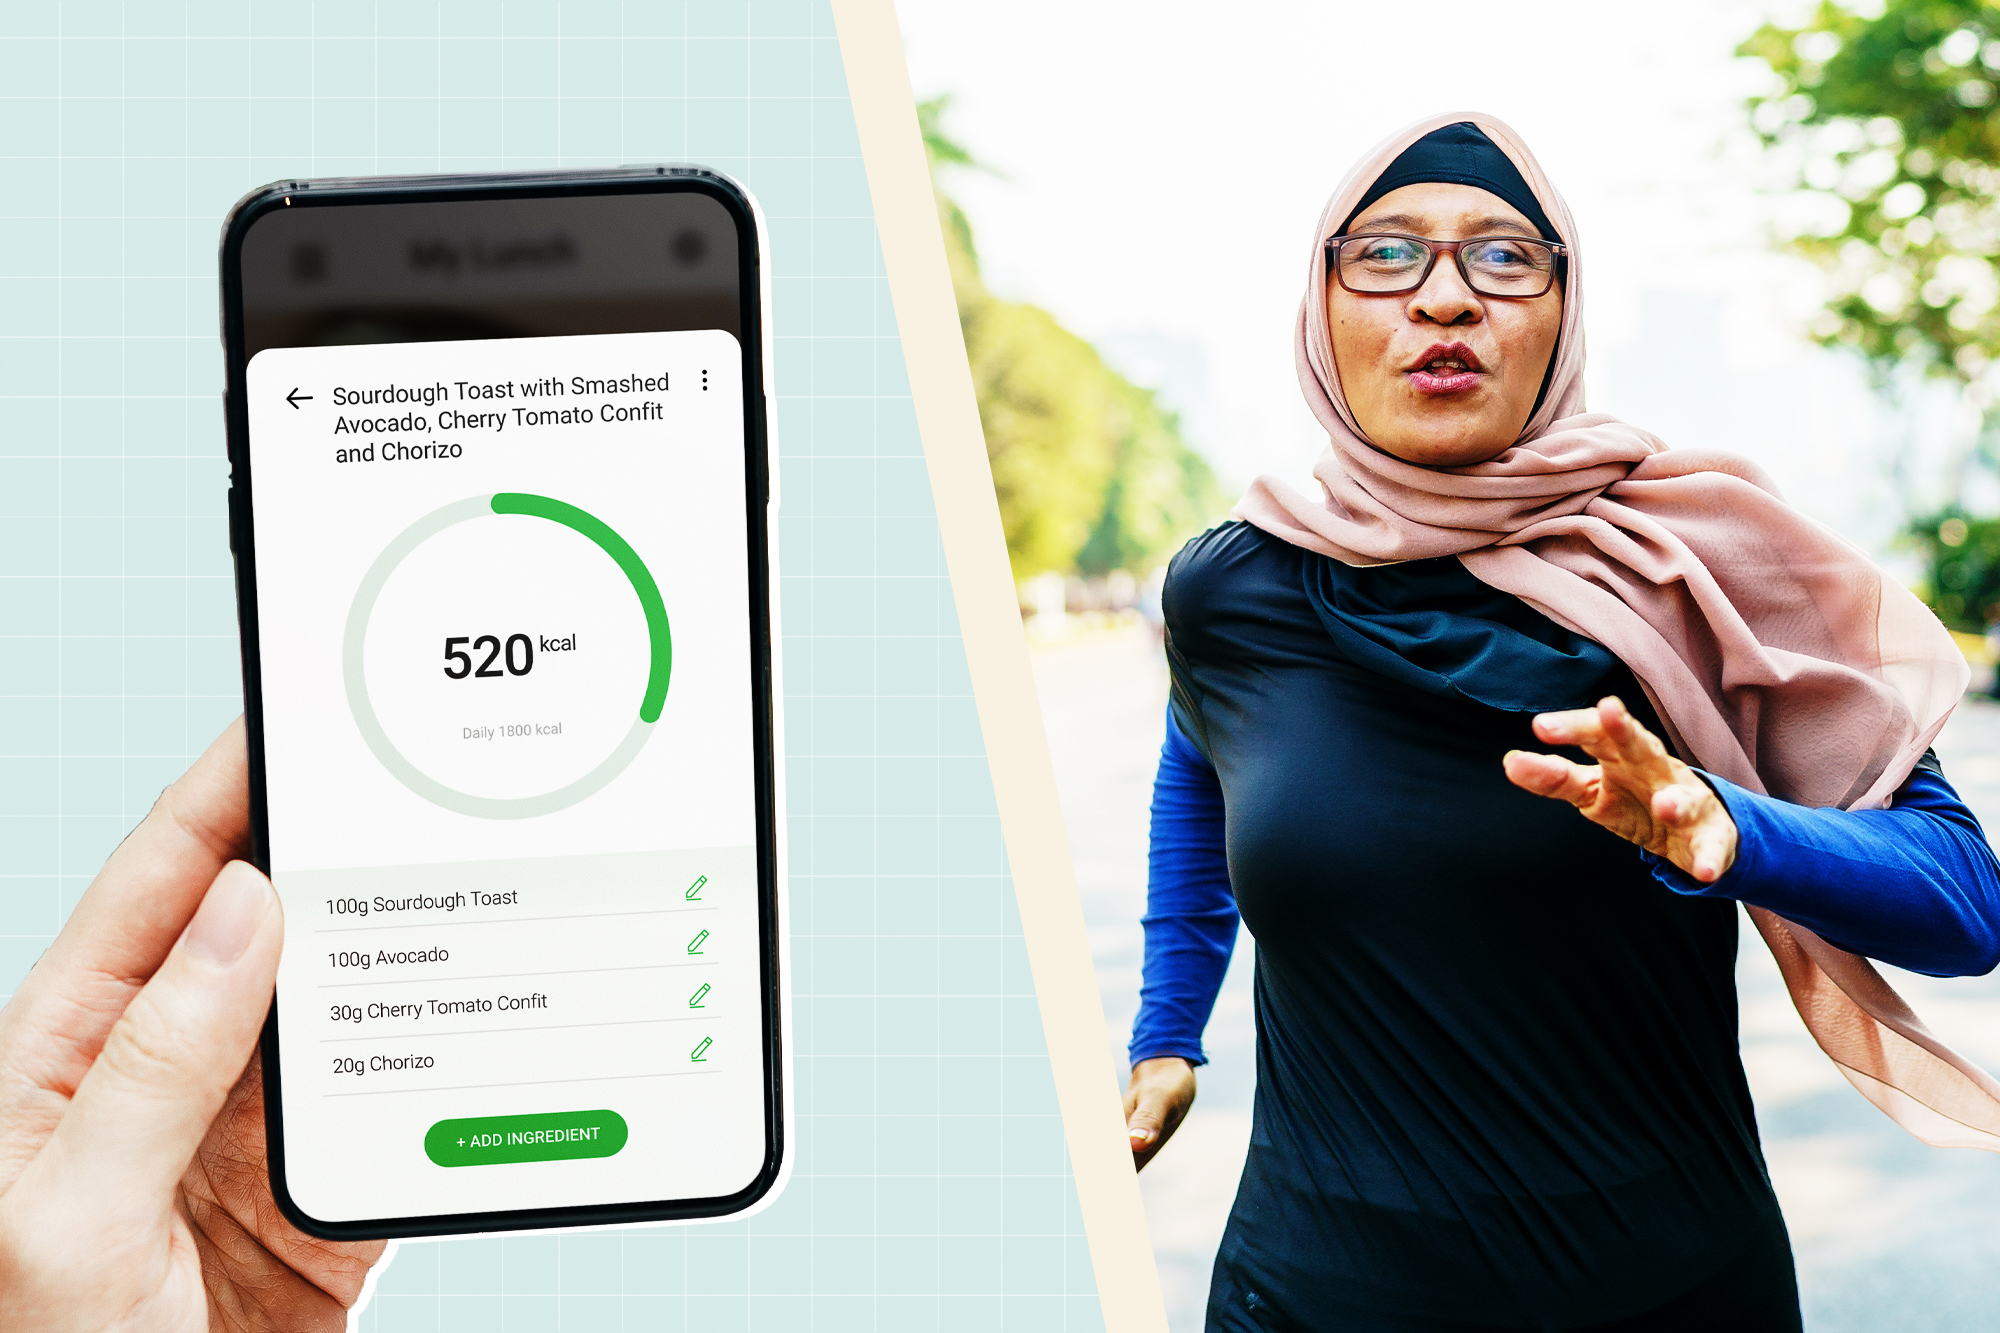 A woman running next to a hand holding a phone with a dieting app on it